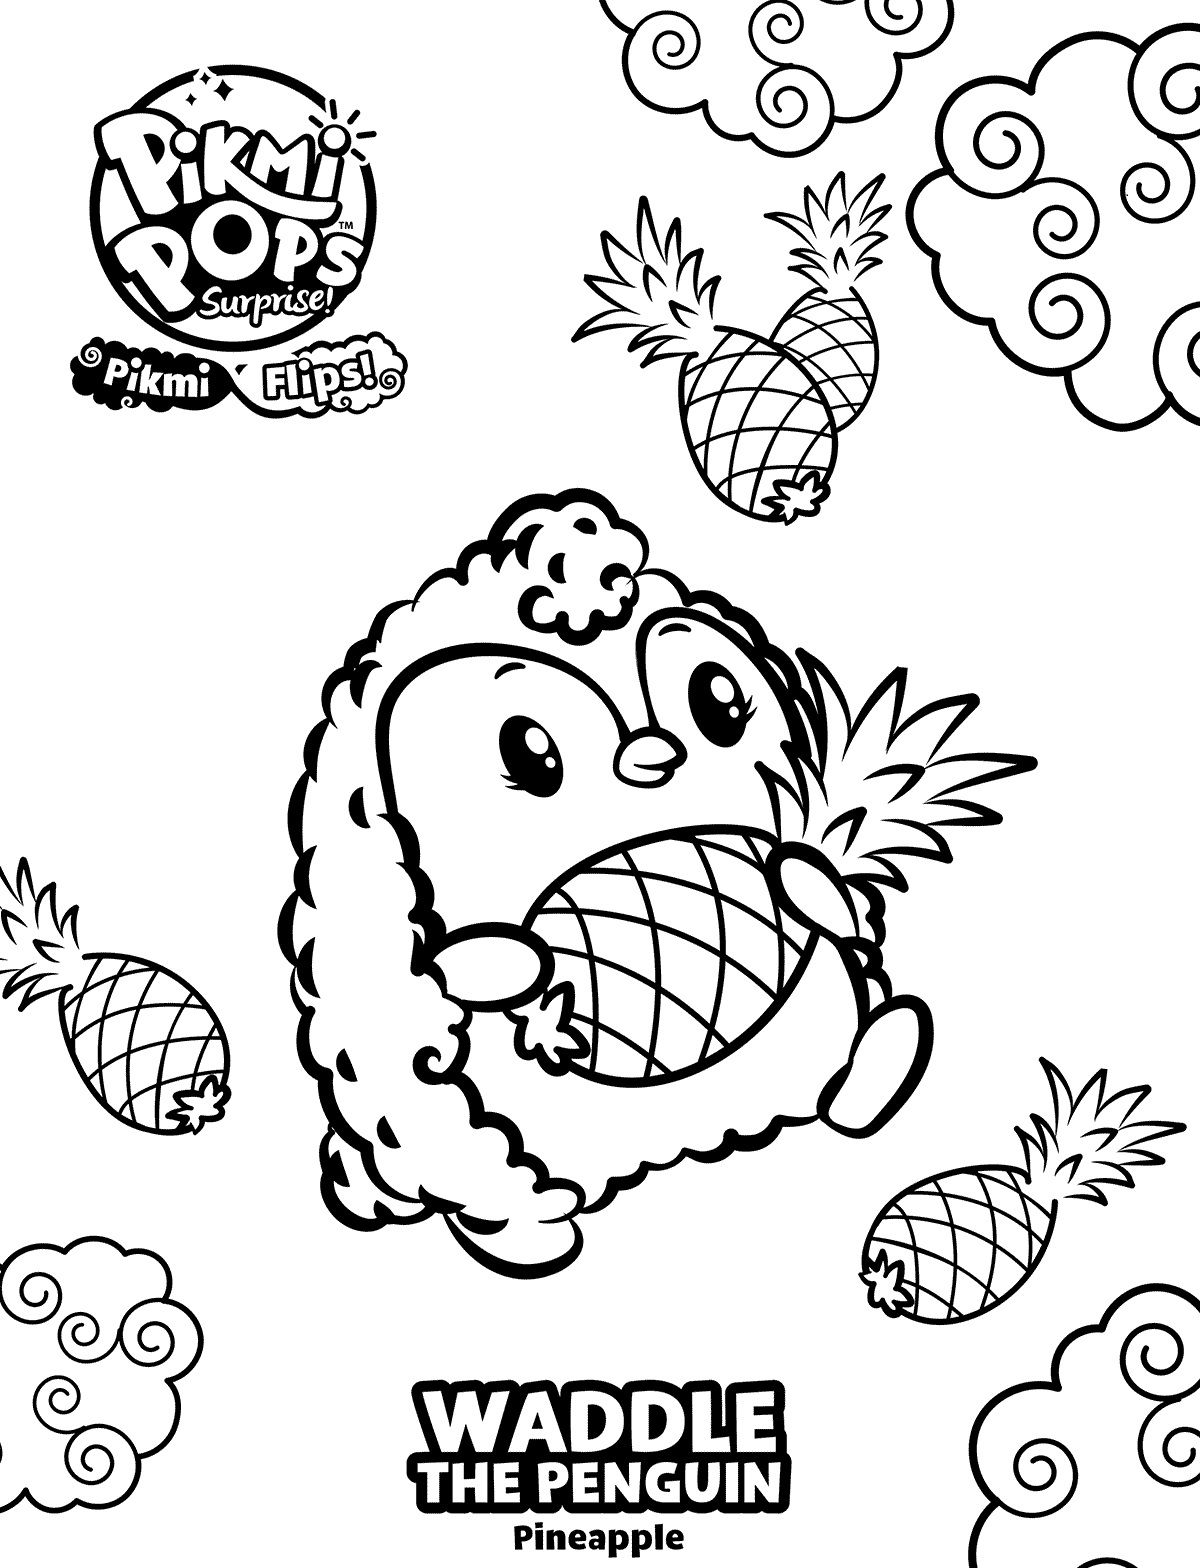 Pikmi Pops Coloring Pages Best Coloring Pages For Kids Coloring Pages Animal Coloring Books Coloring Books